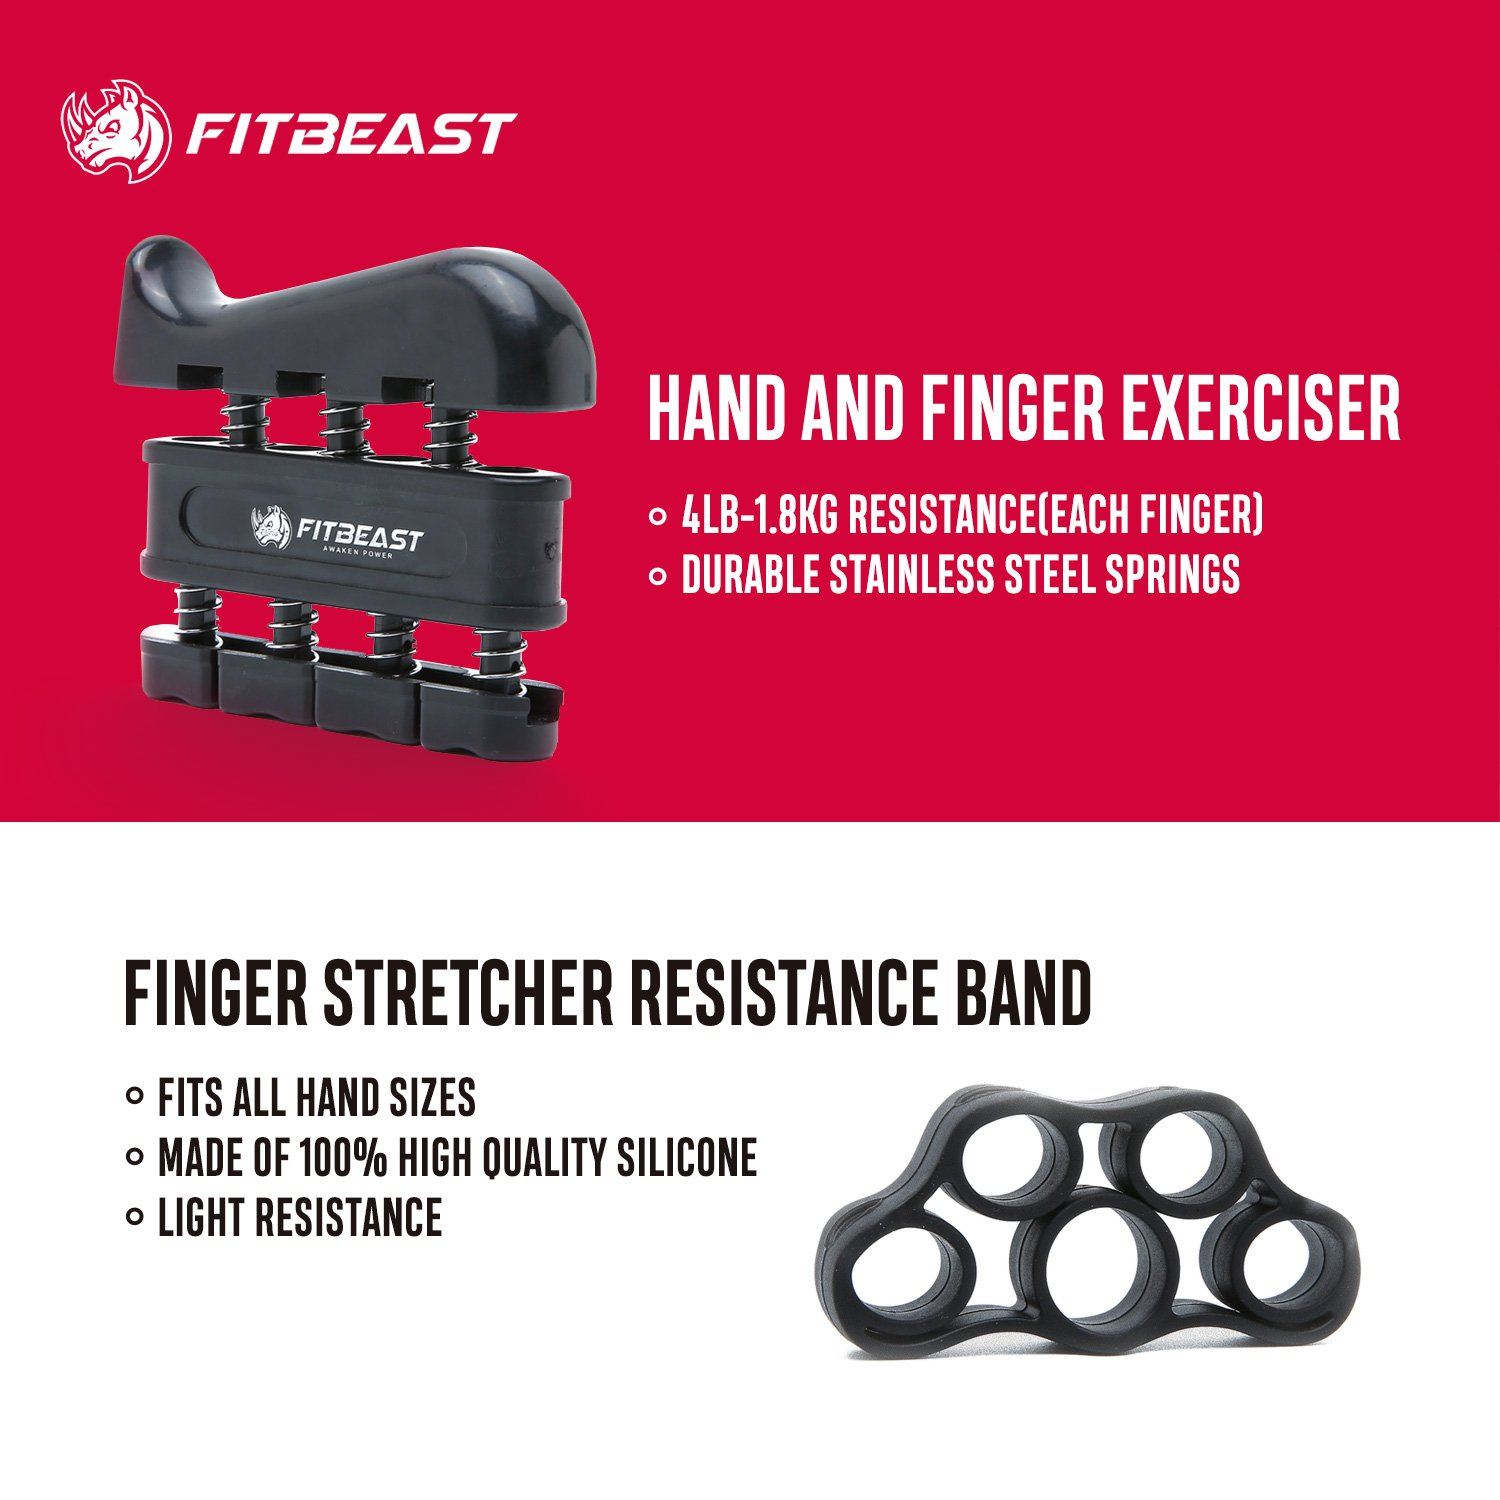 Hand Grip Strengthener Workout Kit (5 Pack) FitBeast Forearm Grip Adjustable Resistance Hand Gripper, Finger Exerciser, Finger Stretcher, Grip Ring & Stress Relief Grip Ball for Athletes and Musicians by FitBeast (Image #3)